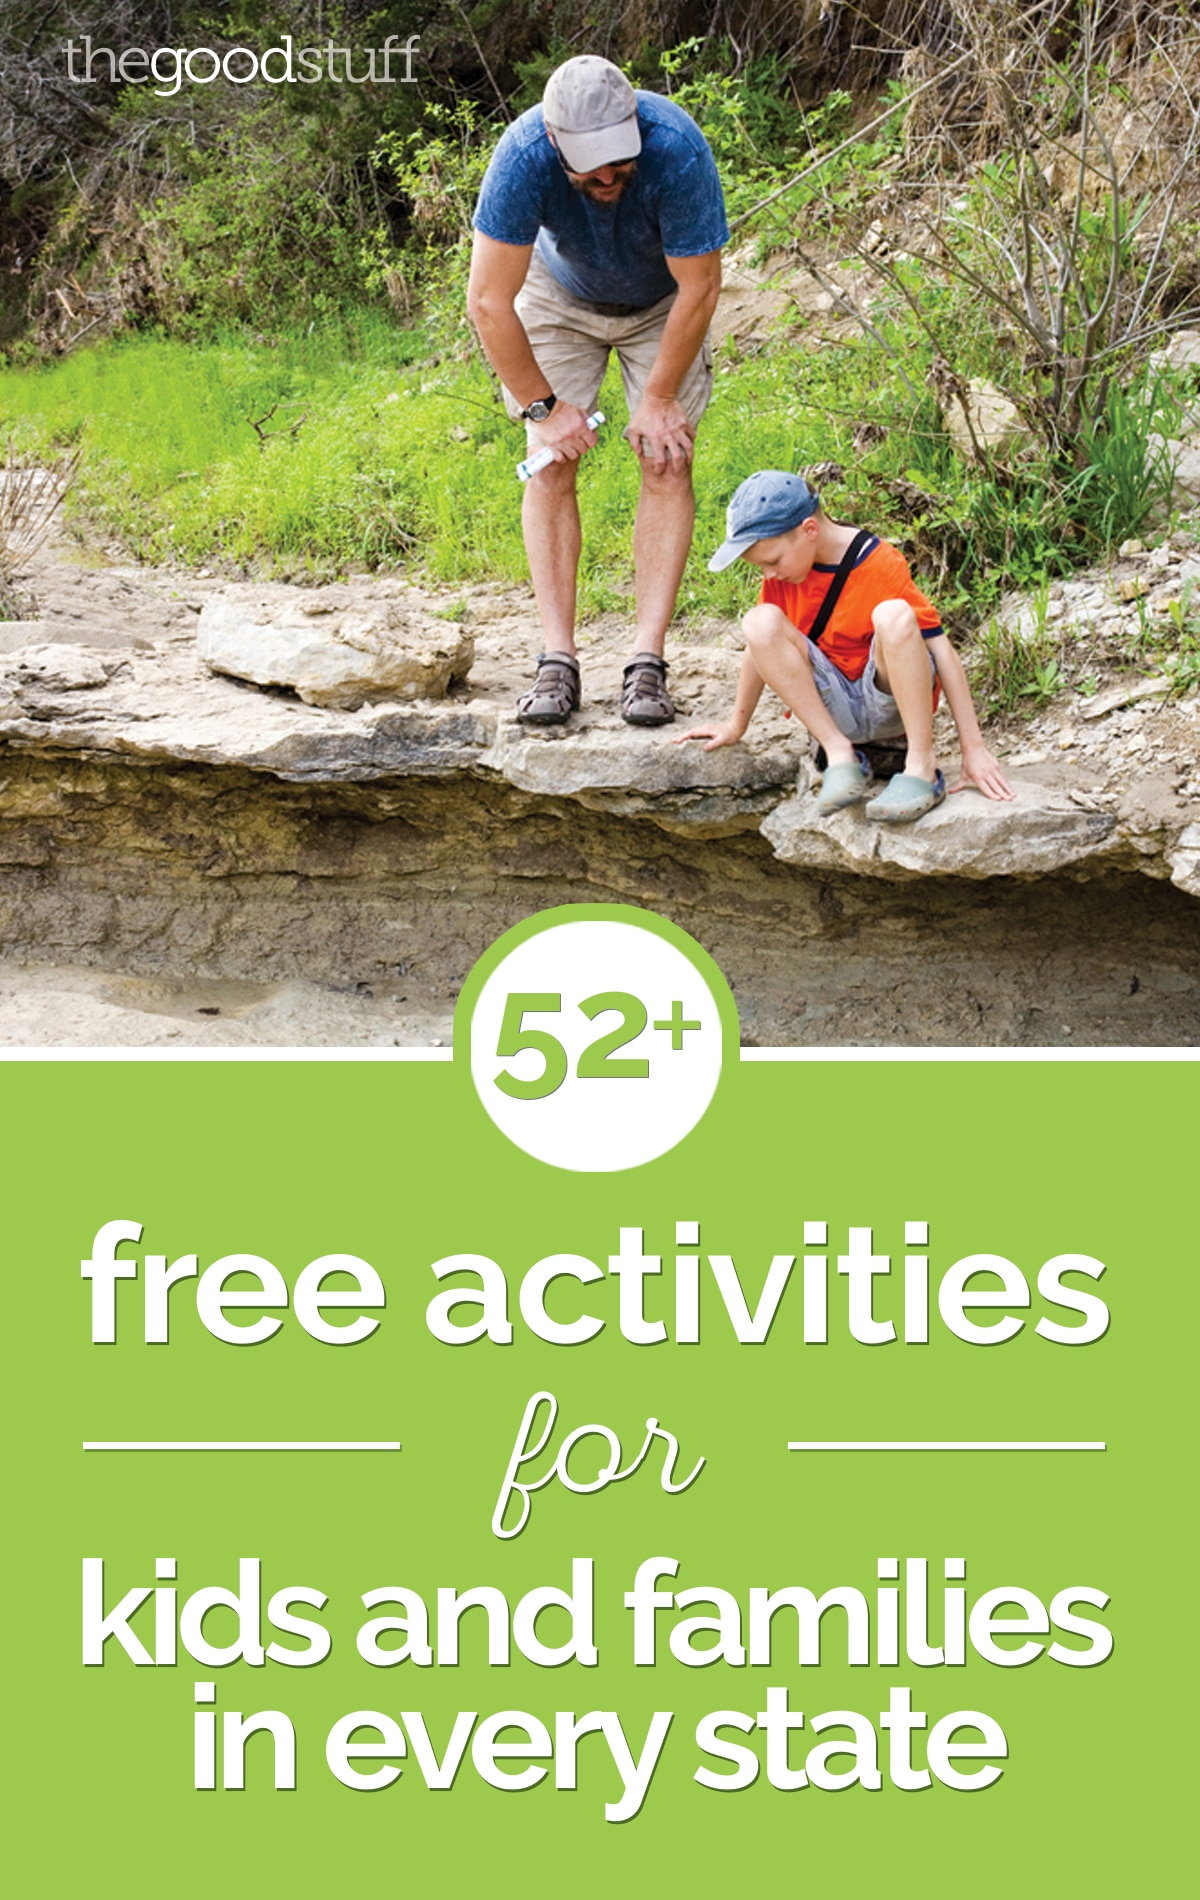 52+Free Activities for Kids and Families in Every State | thegoodstuff